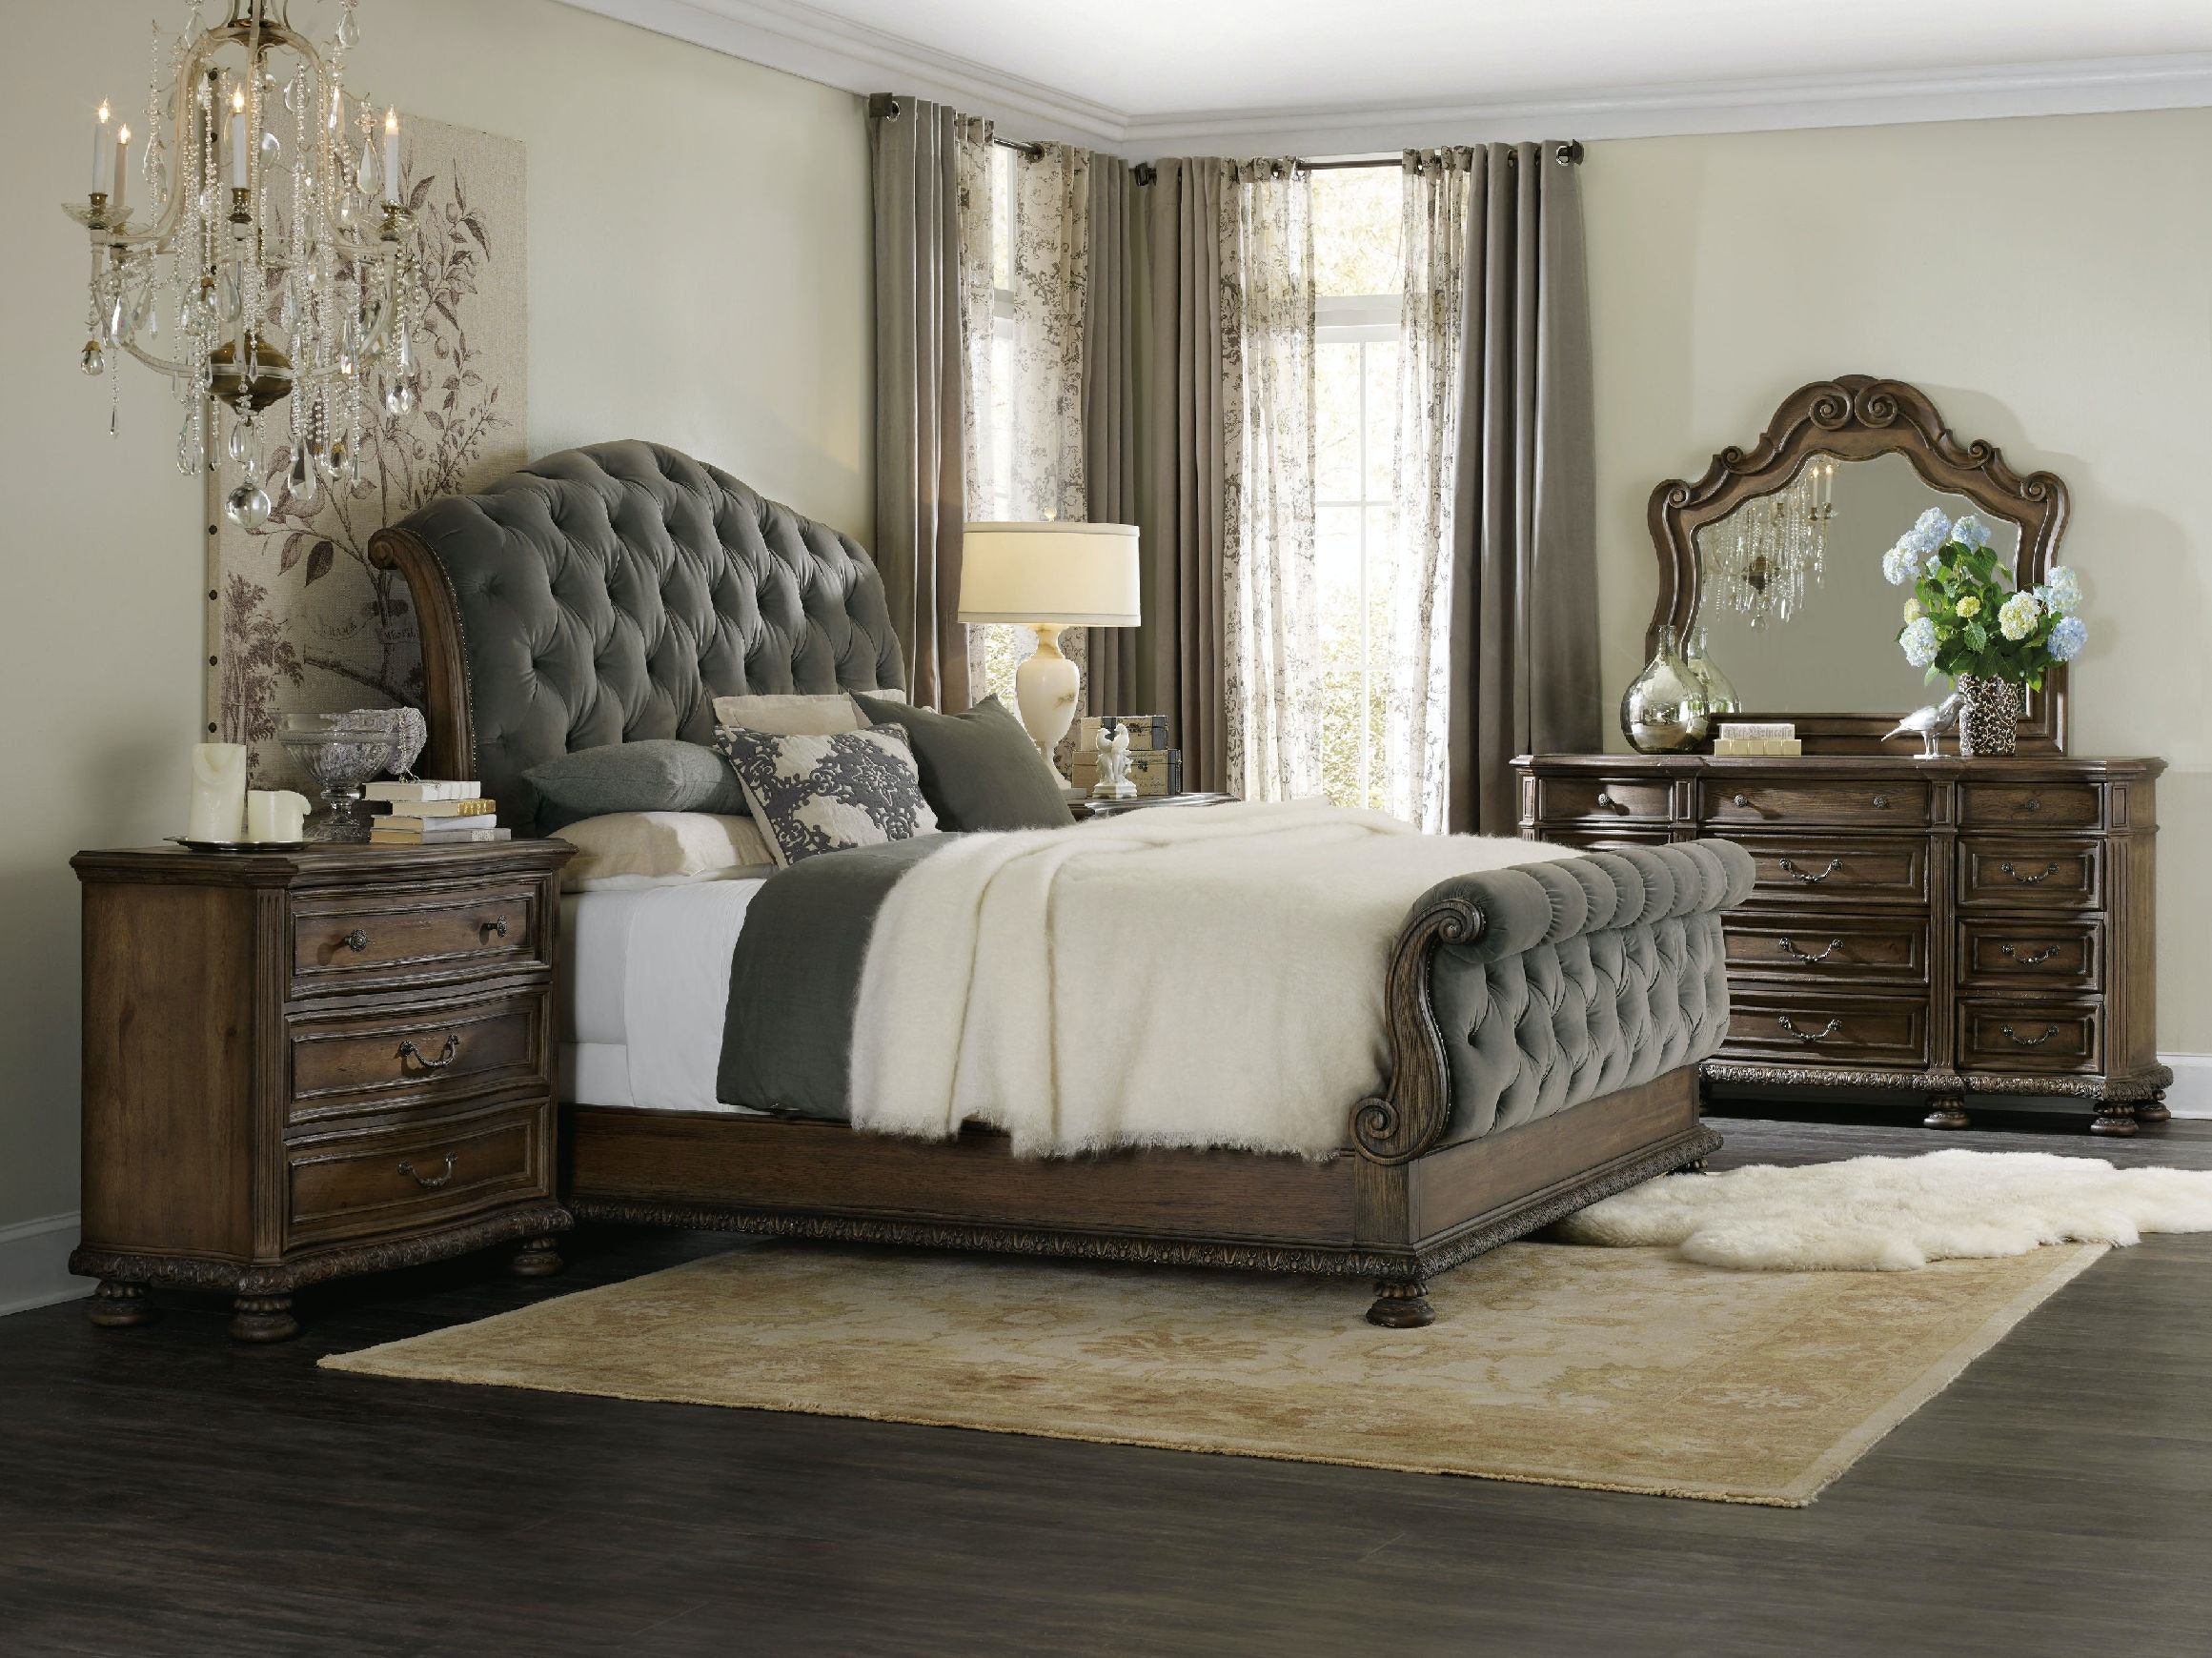 Hooker Furniture Bedroom Rhapsody King Tufted Bed 5070-90566A-GRY